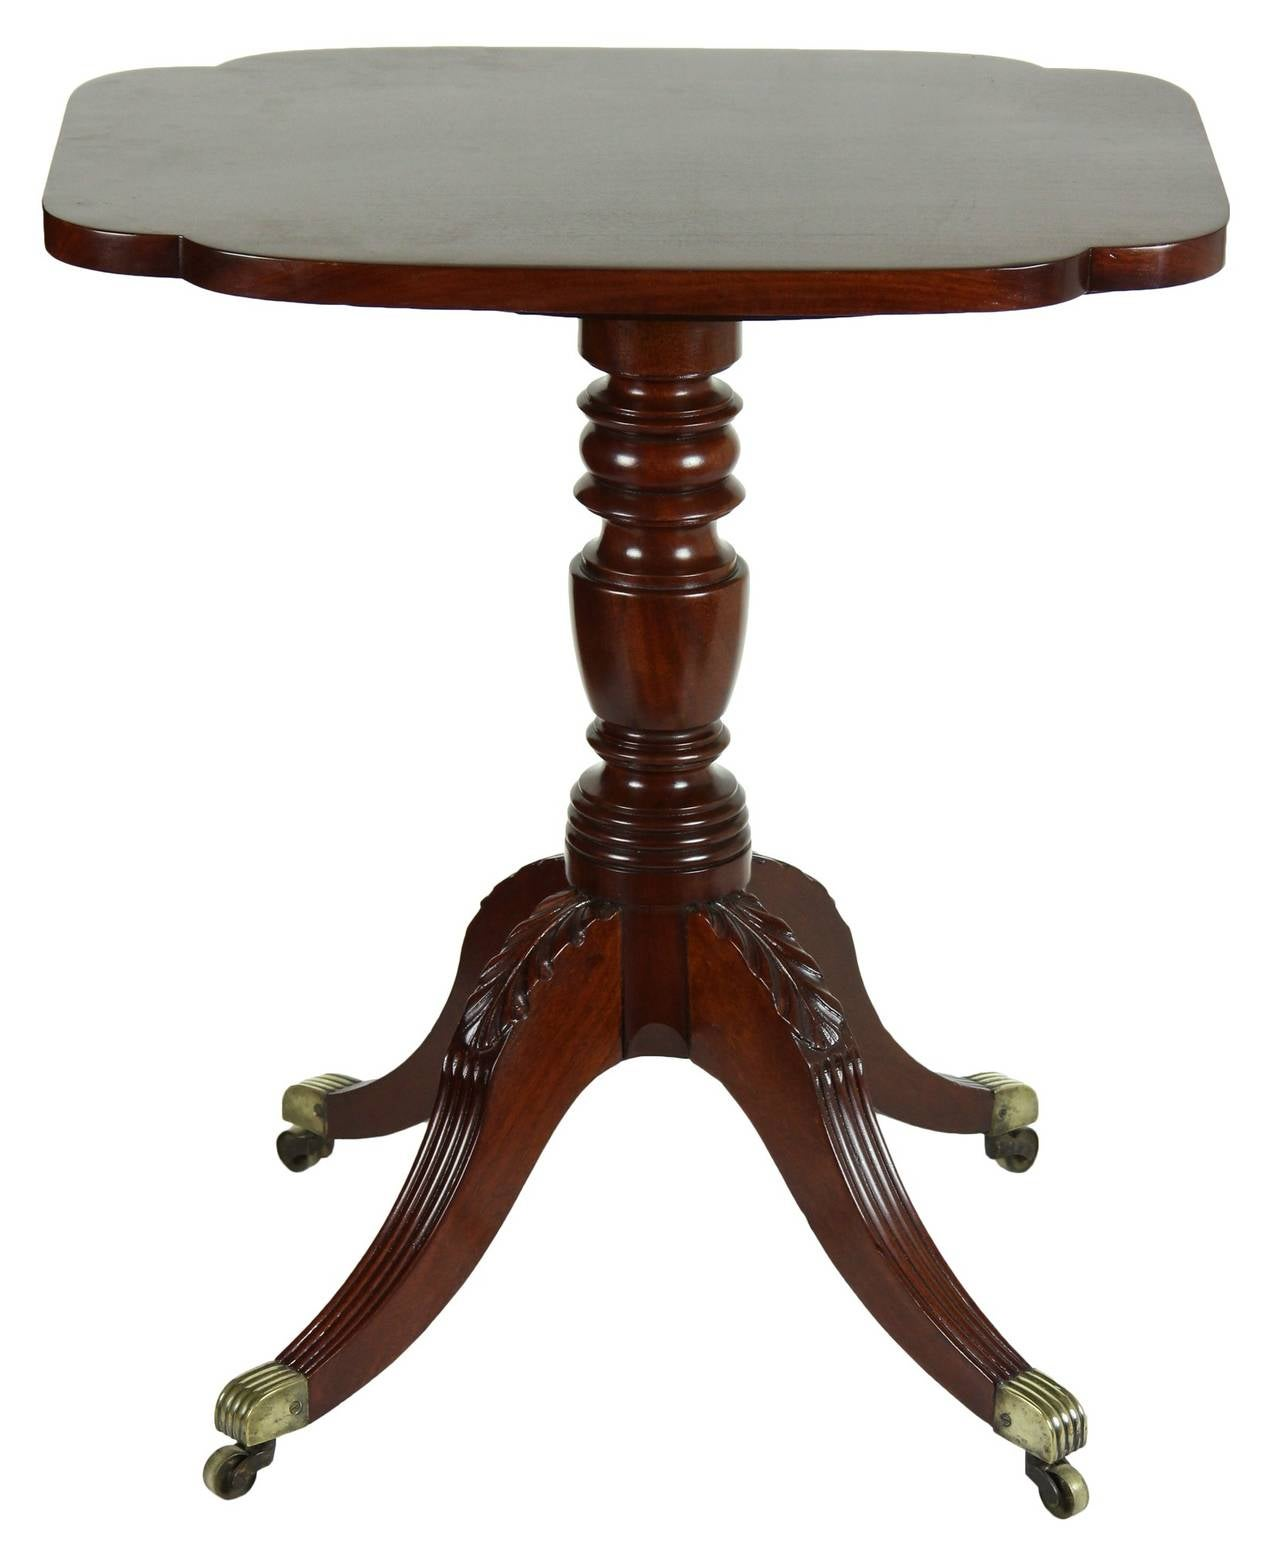 American Classical Tilt-Top Candlestand with Four Legs, Phyfe School, New York For Sale